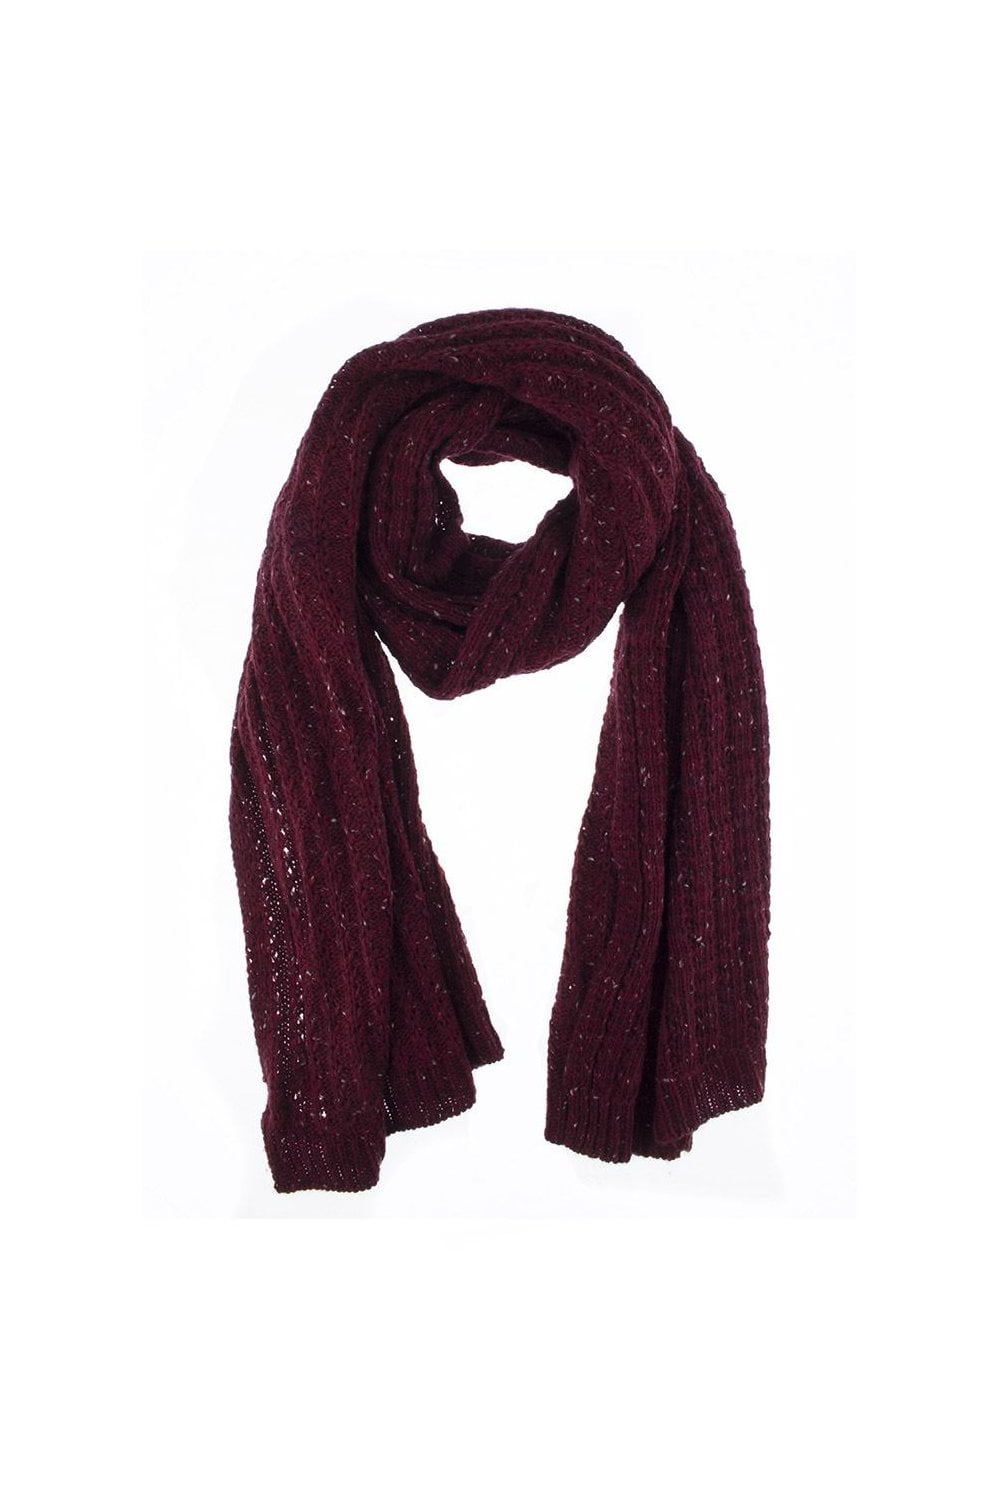 d2add936a25 Dents Womens Cable Knit Marl Blanket Scarf - Womenswear from Potters ...